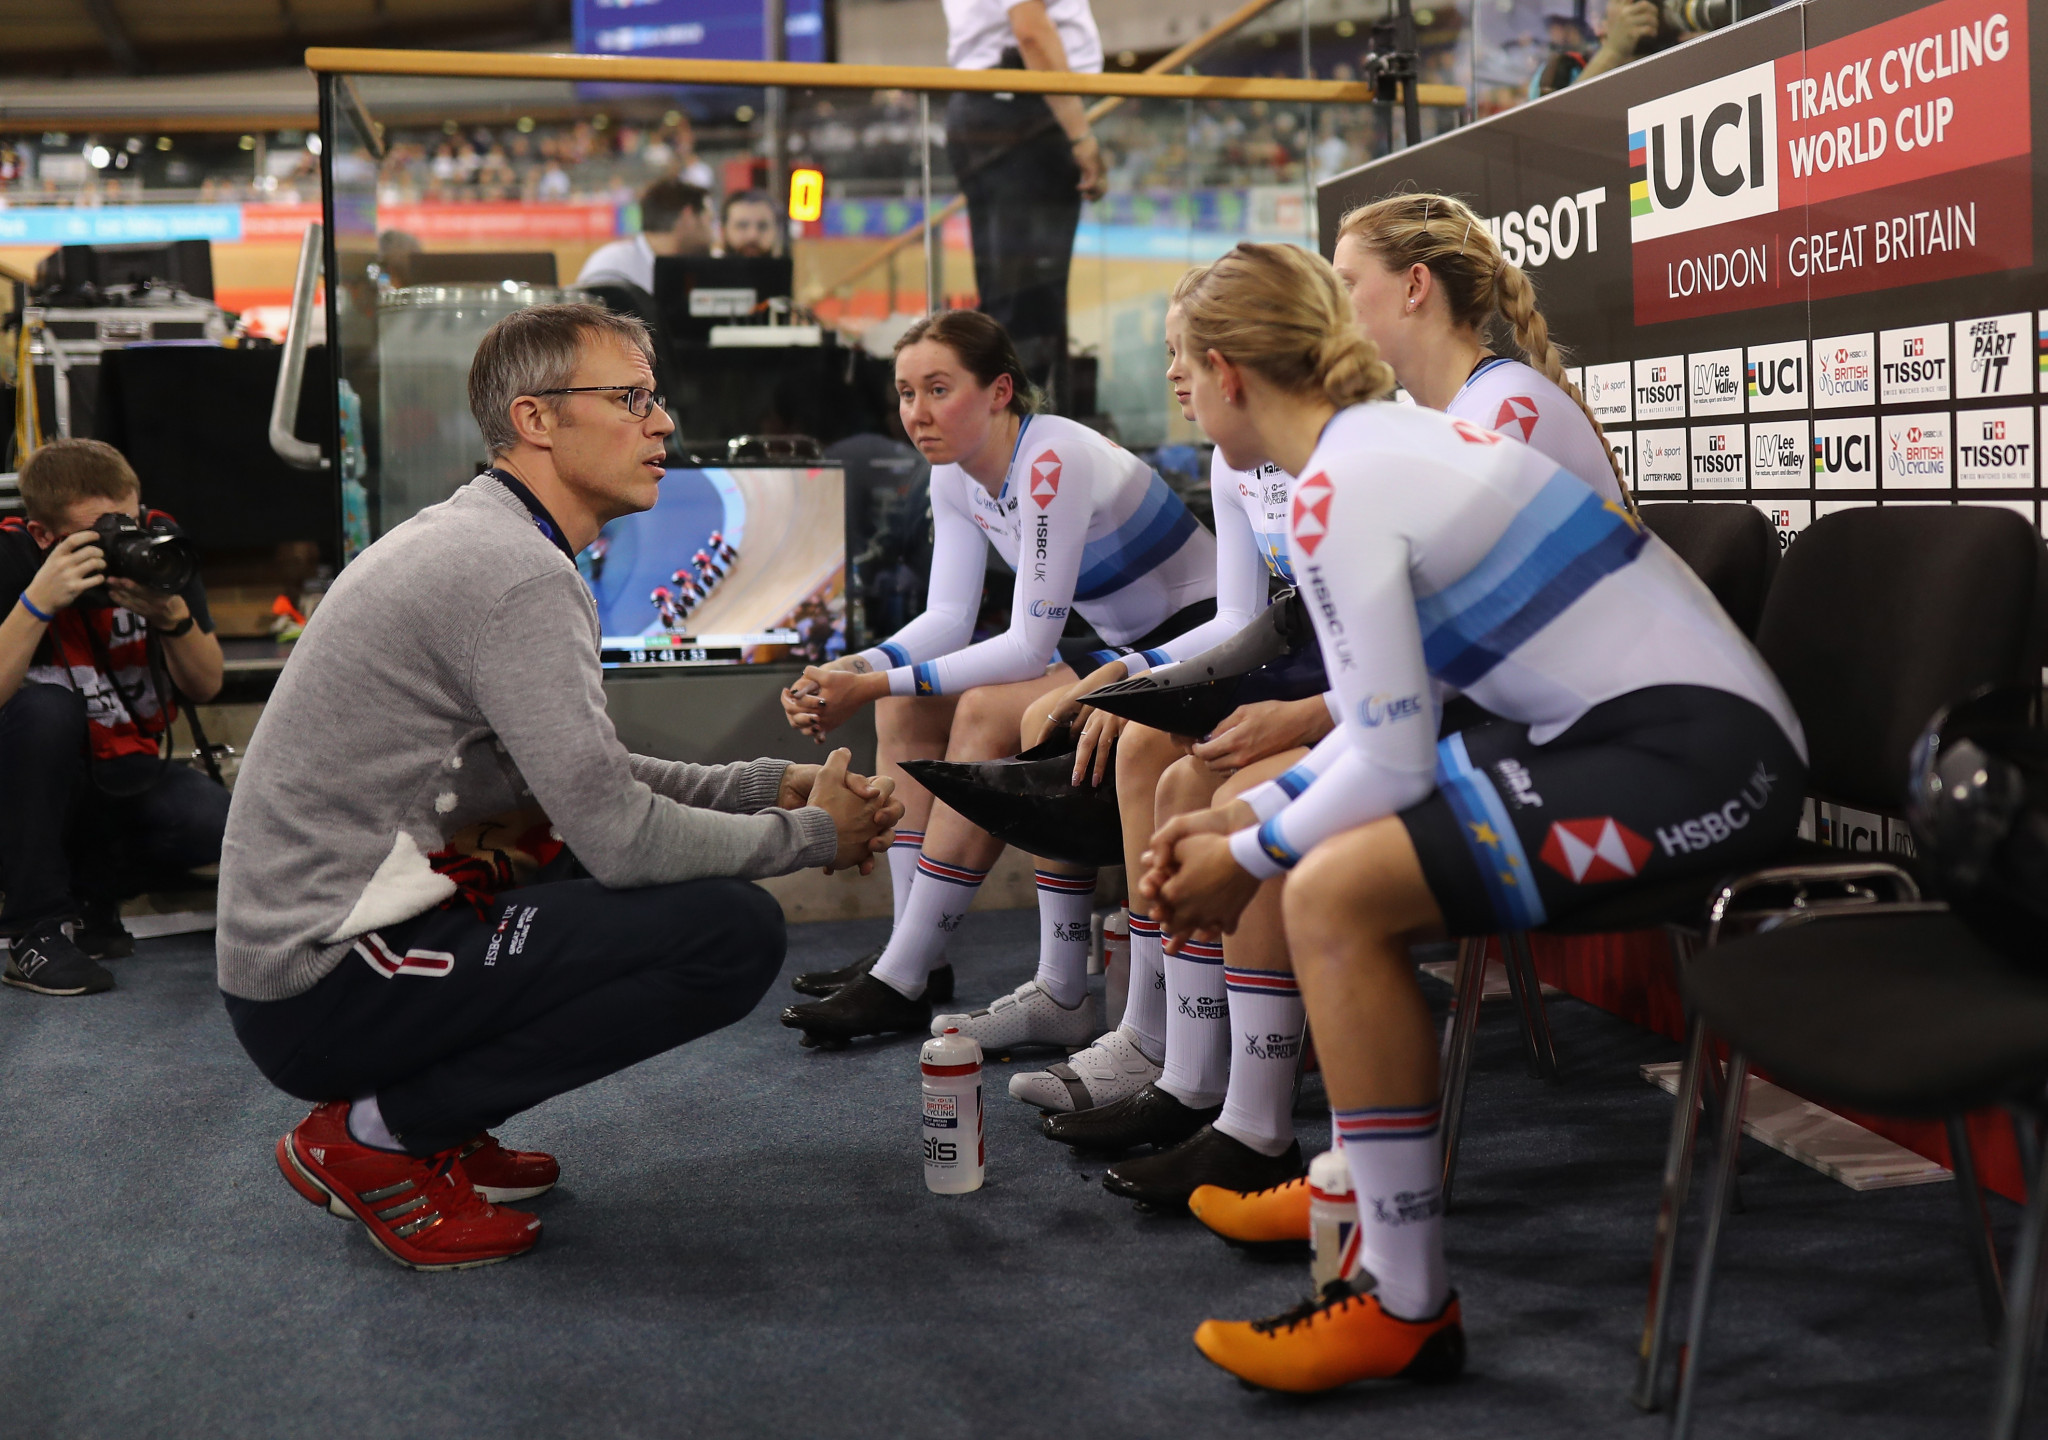 Paul Manning has stepped down as women's endurance coach at British Cycling ©Getty Images